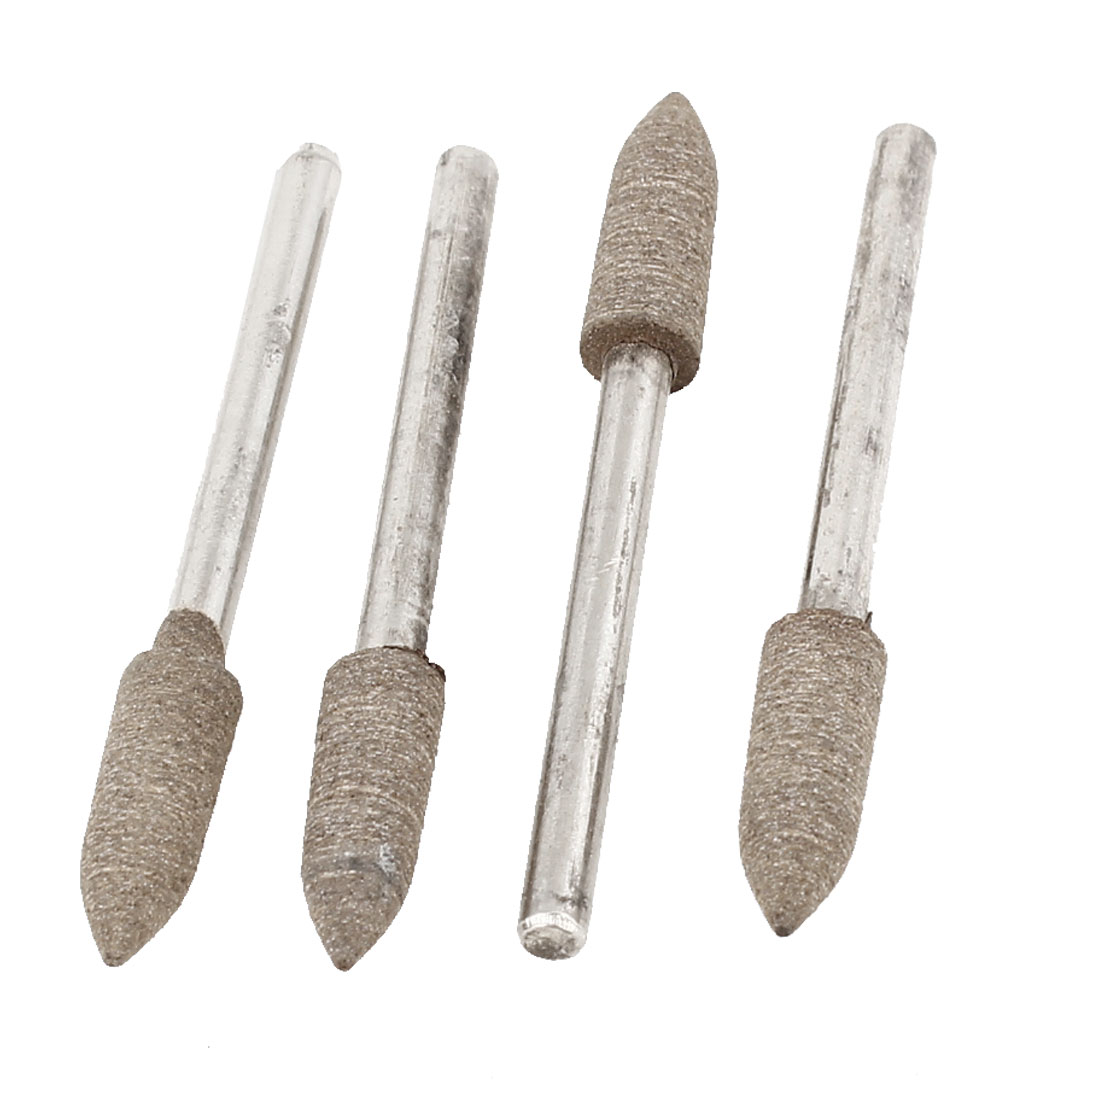 4 Pcs Silver Tone Alloy Shank Dark Khaki Cone Shaped Tip Mounted Grinding Point Abrasive Sanding Sharpening Tool 3mmx5mmx15mm